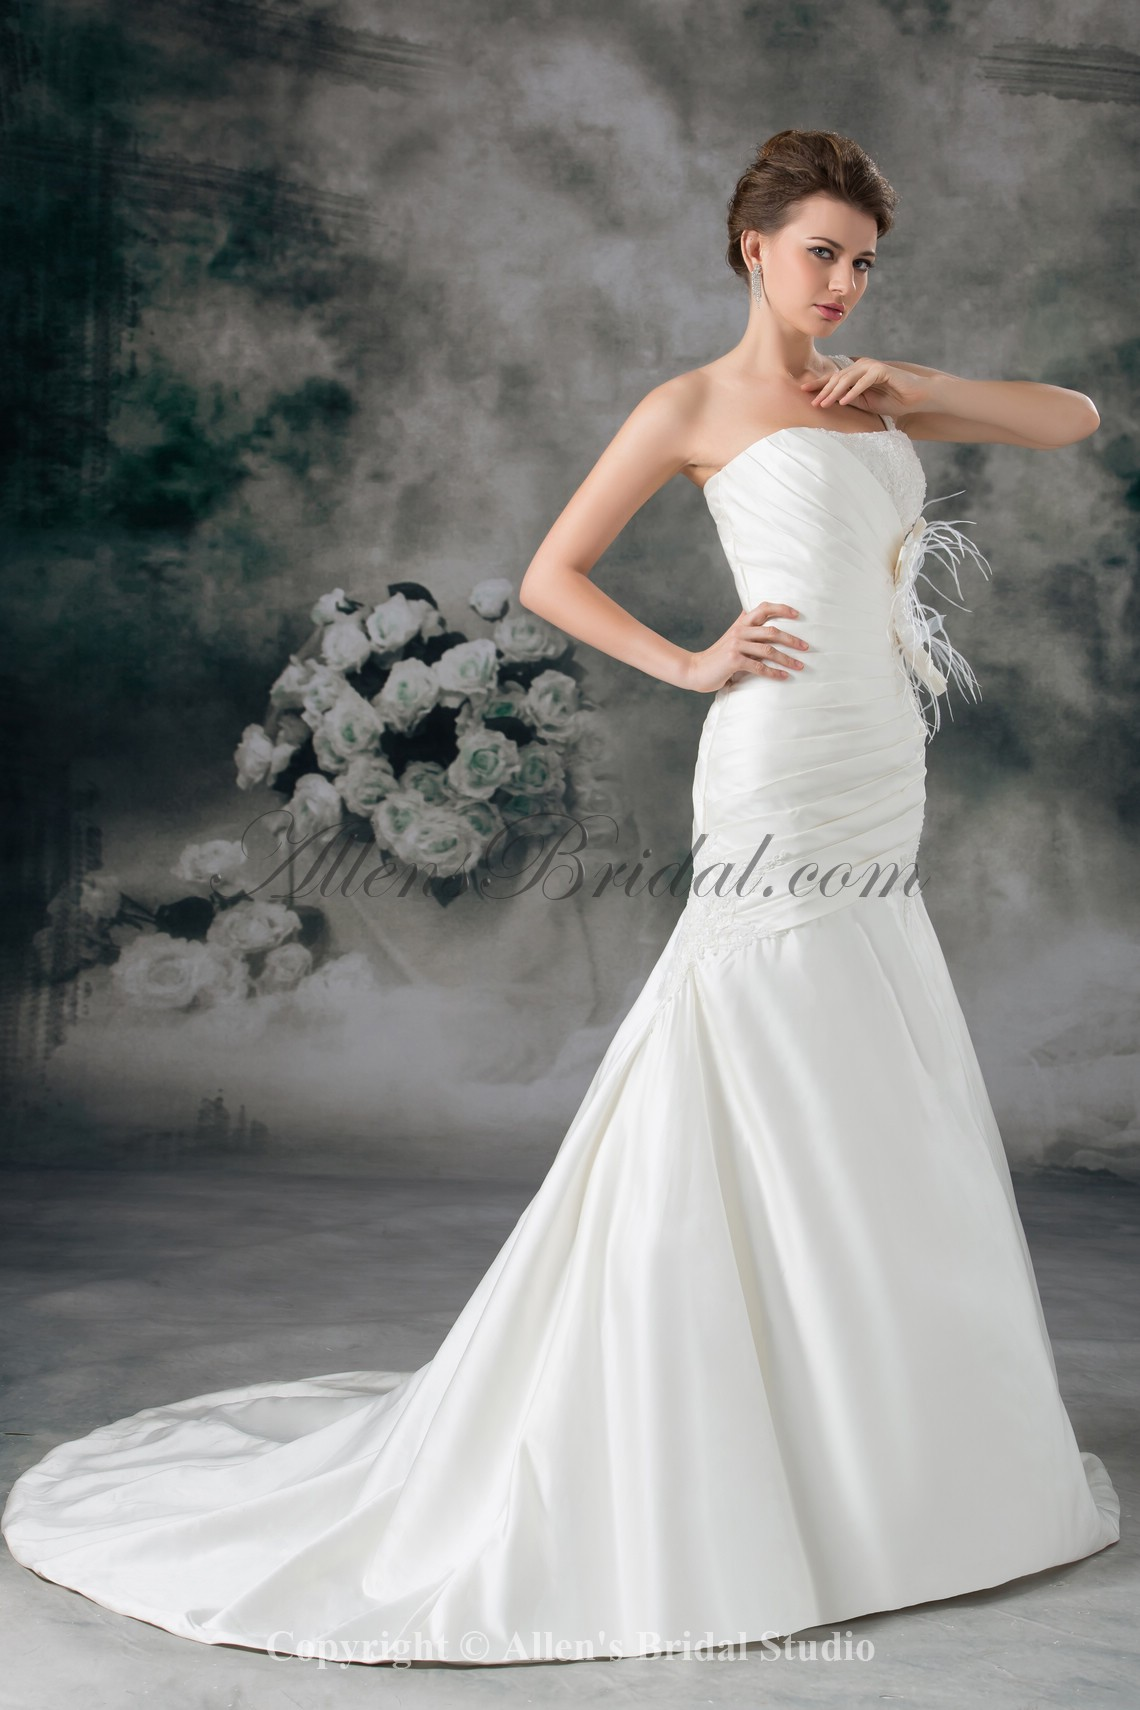 /931-7464/satin-one-shoulder-neckline-chapel-train-mermaid-feather-wedding-dress.jpg